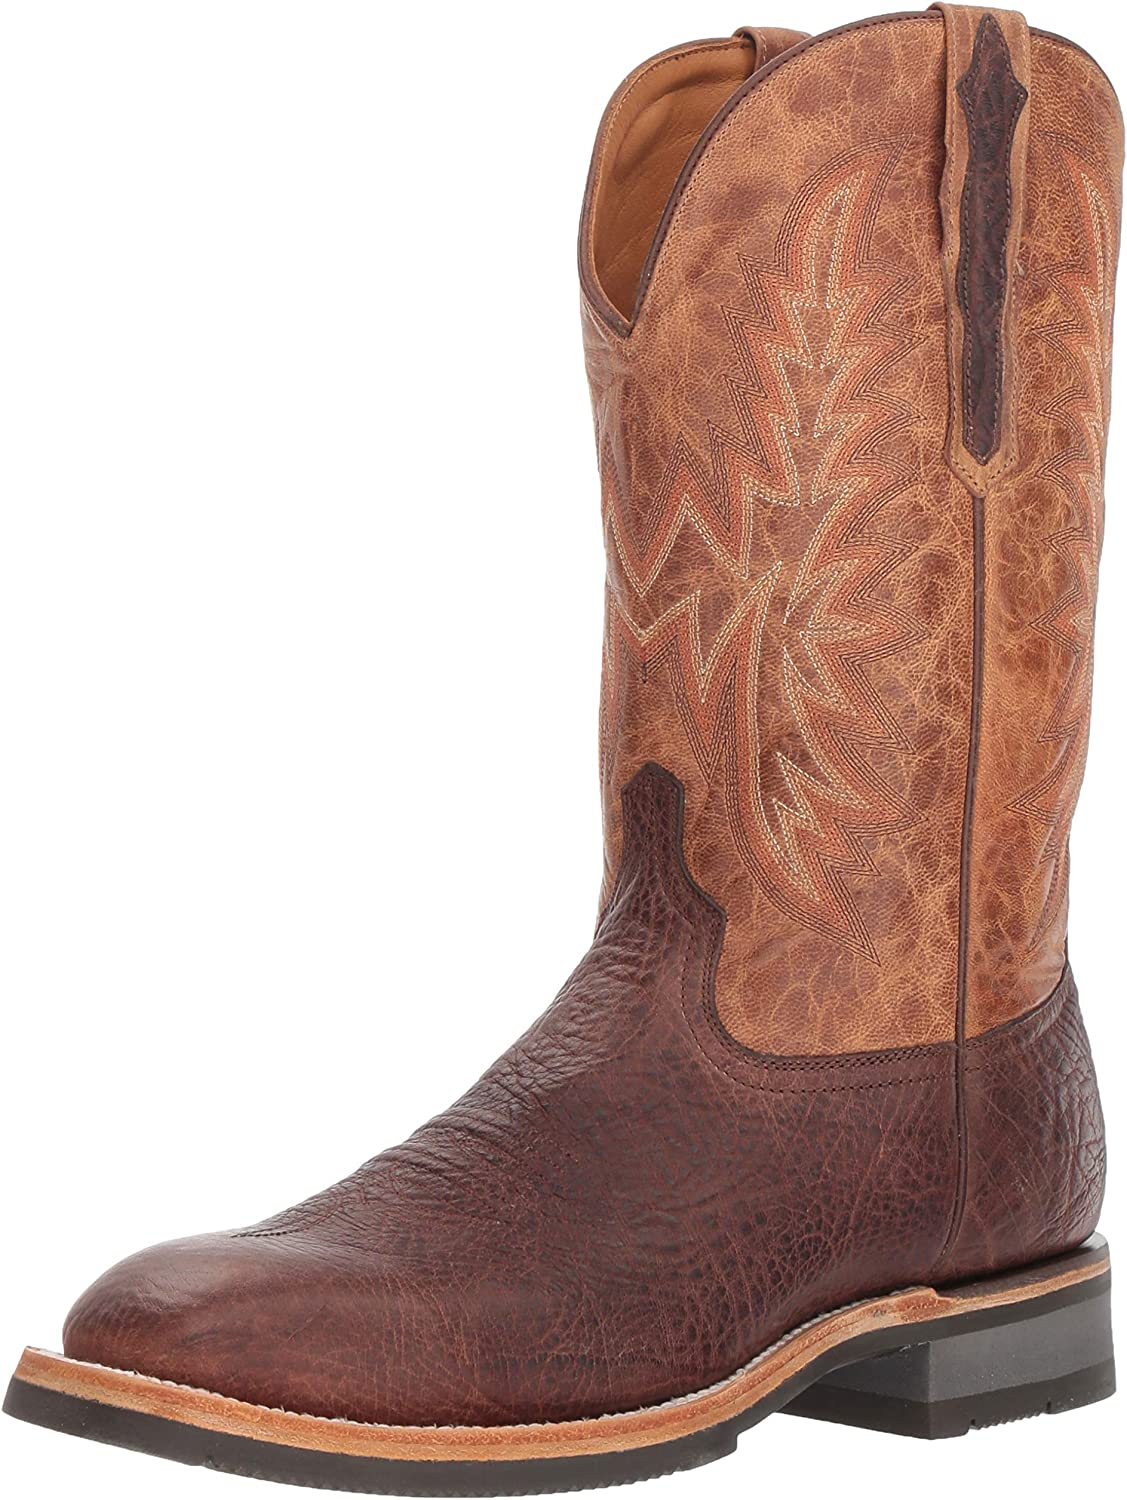 Lucchese Bootmaker Men's Rudy Western Boot